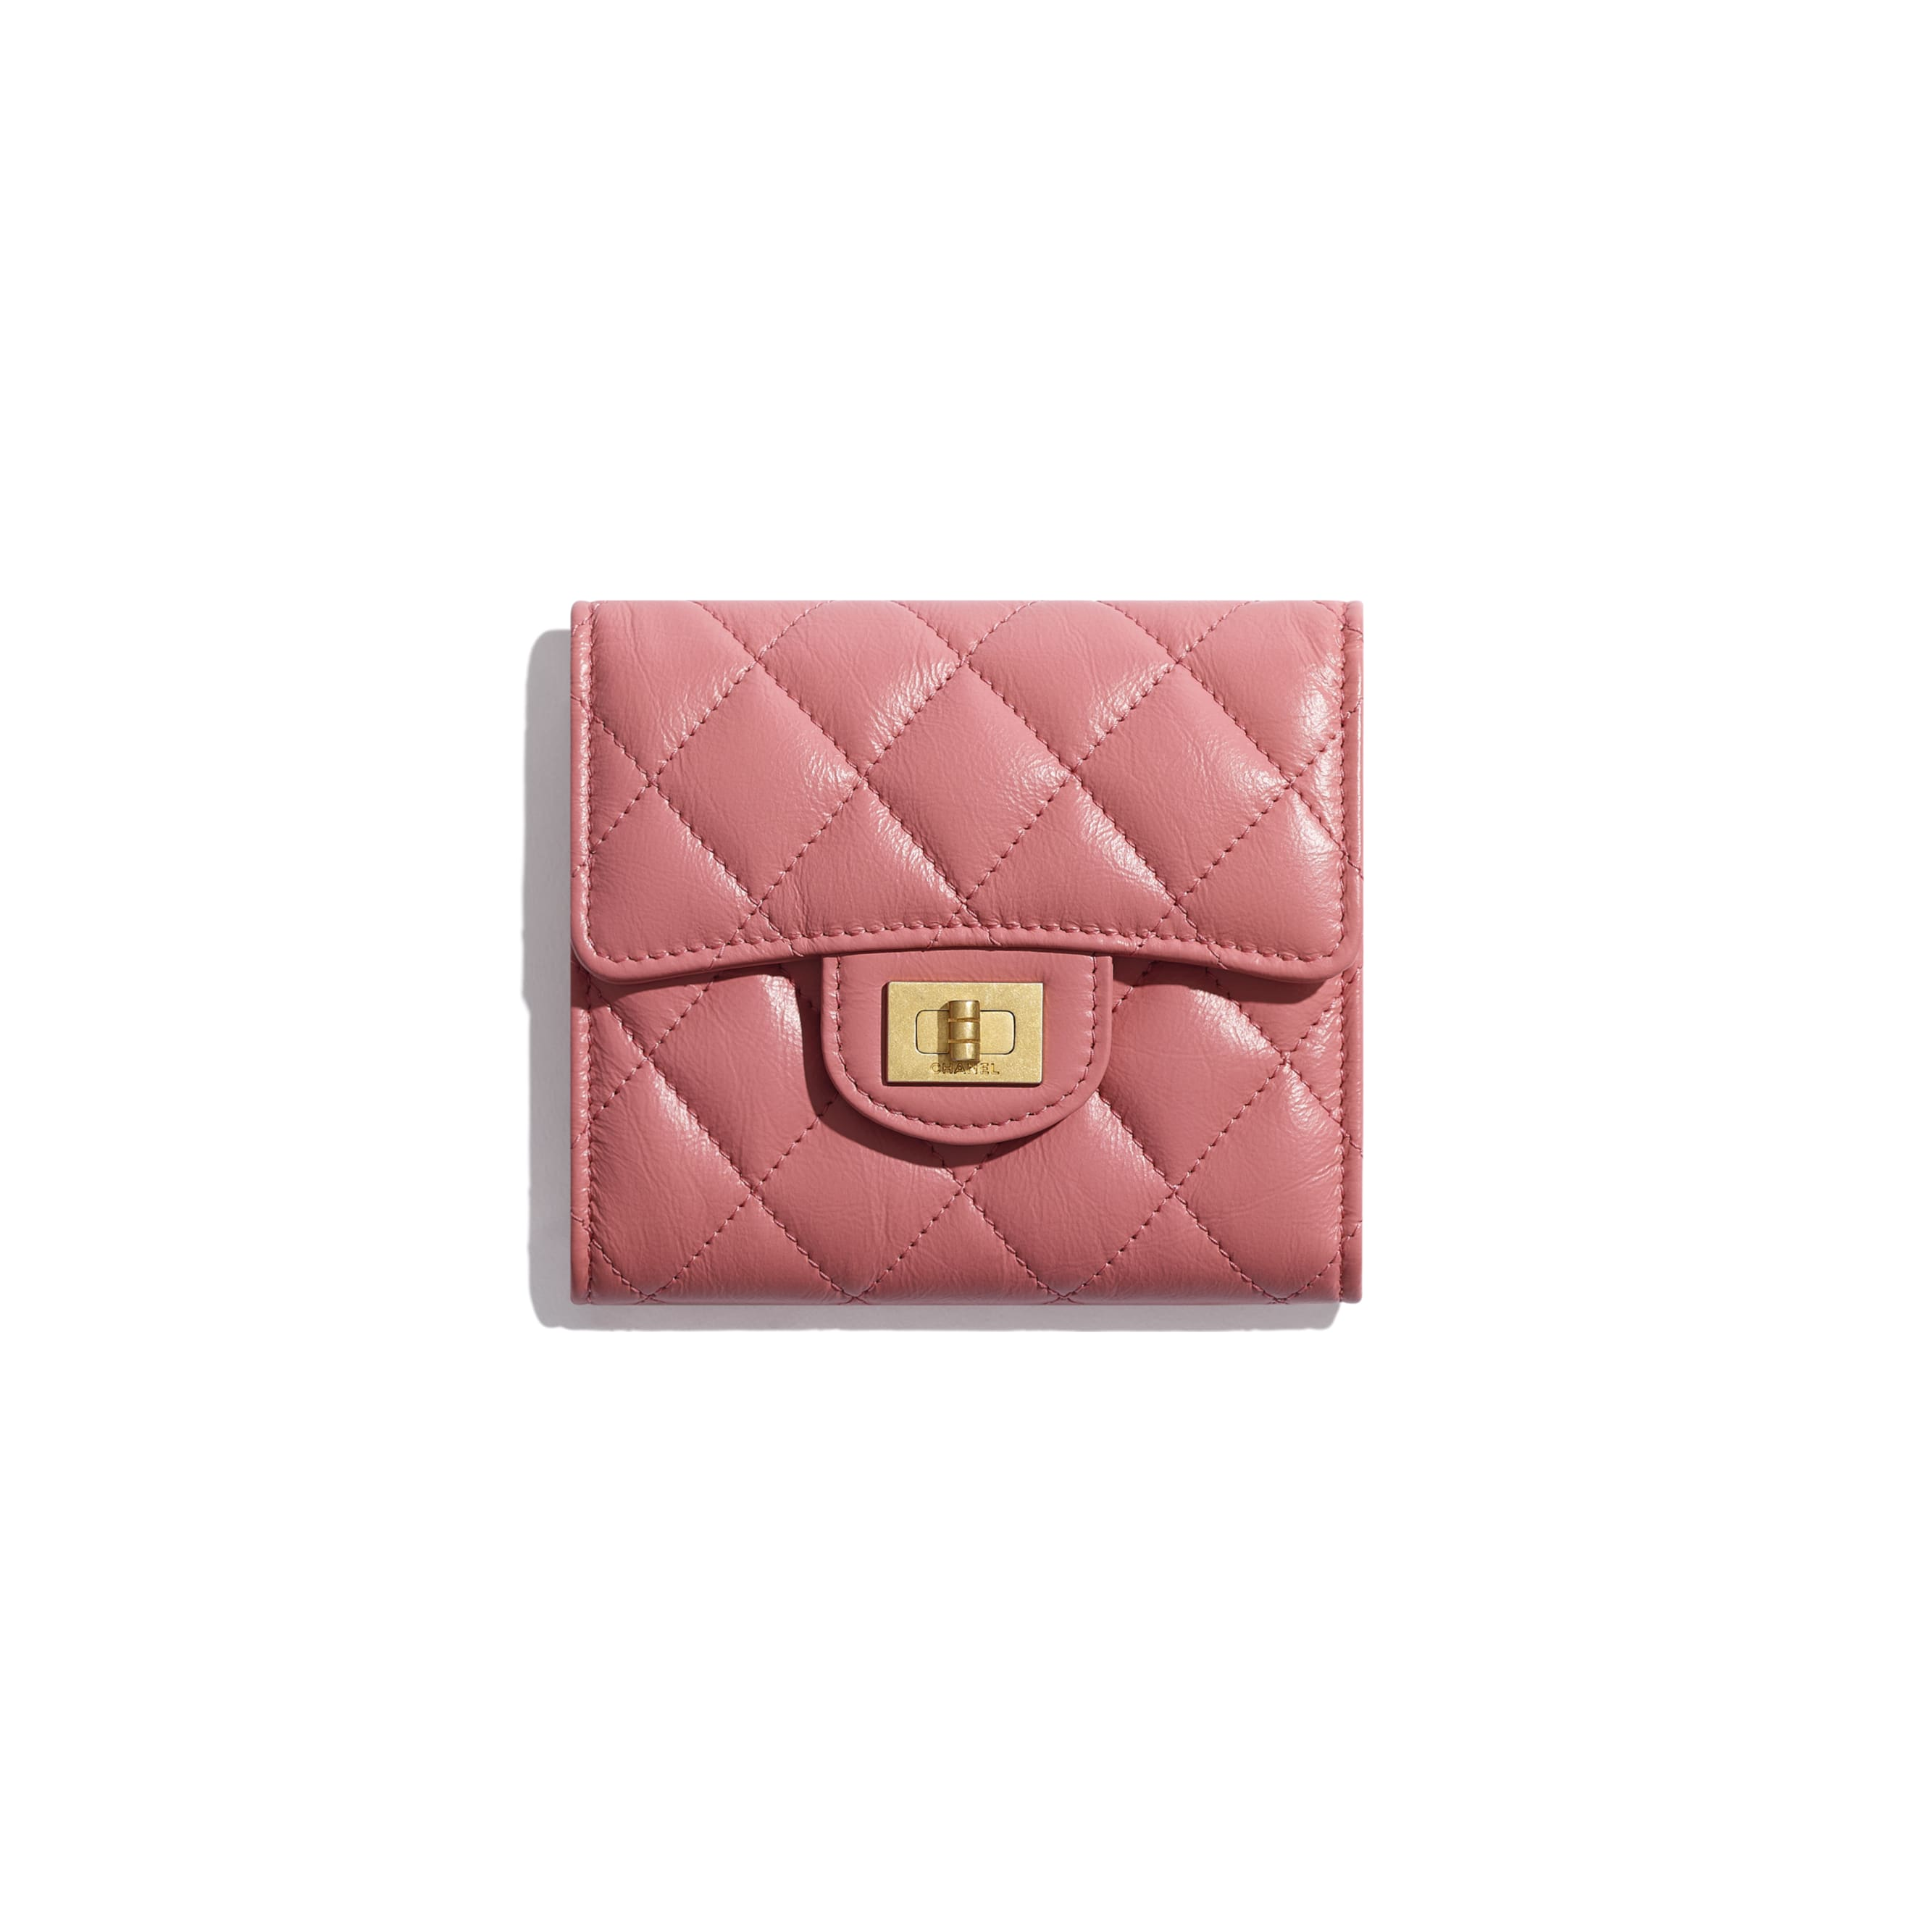 2.55 Small Flap Wallet - Pink - Aged Calfskin & Gold-Tone Metal - CHANEL - Default view - see standard sized version